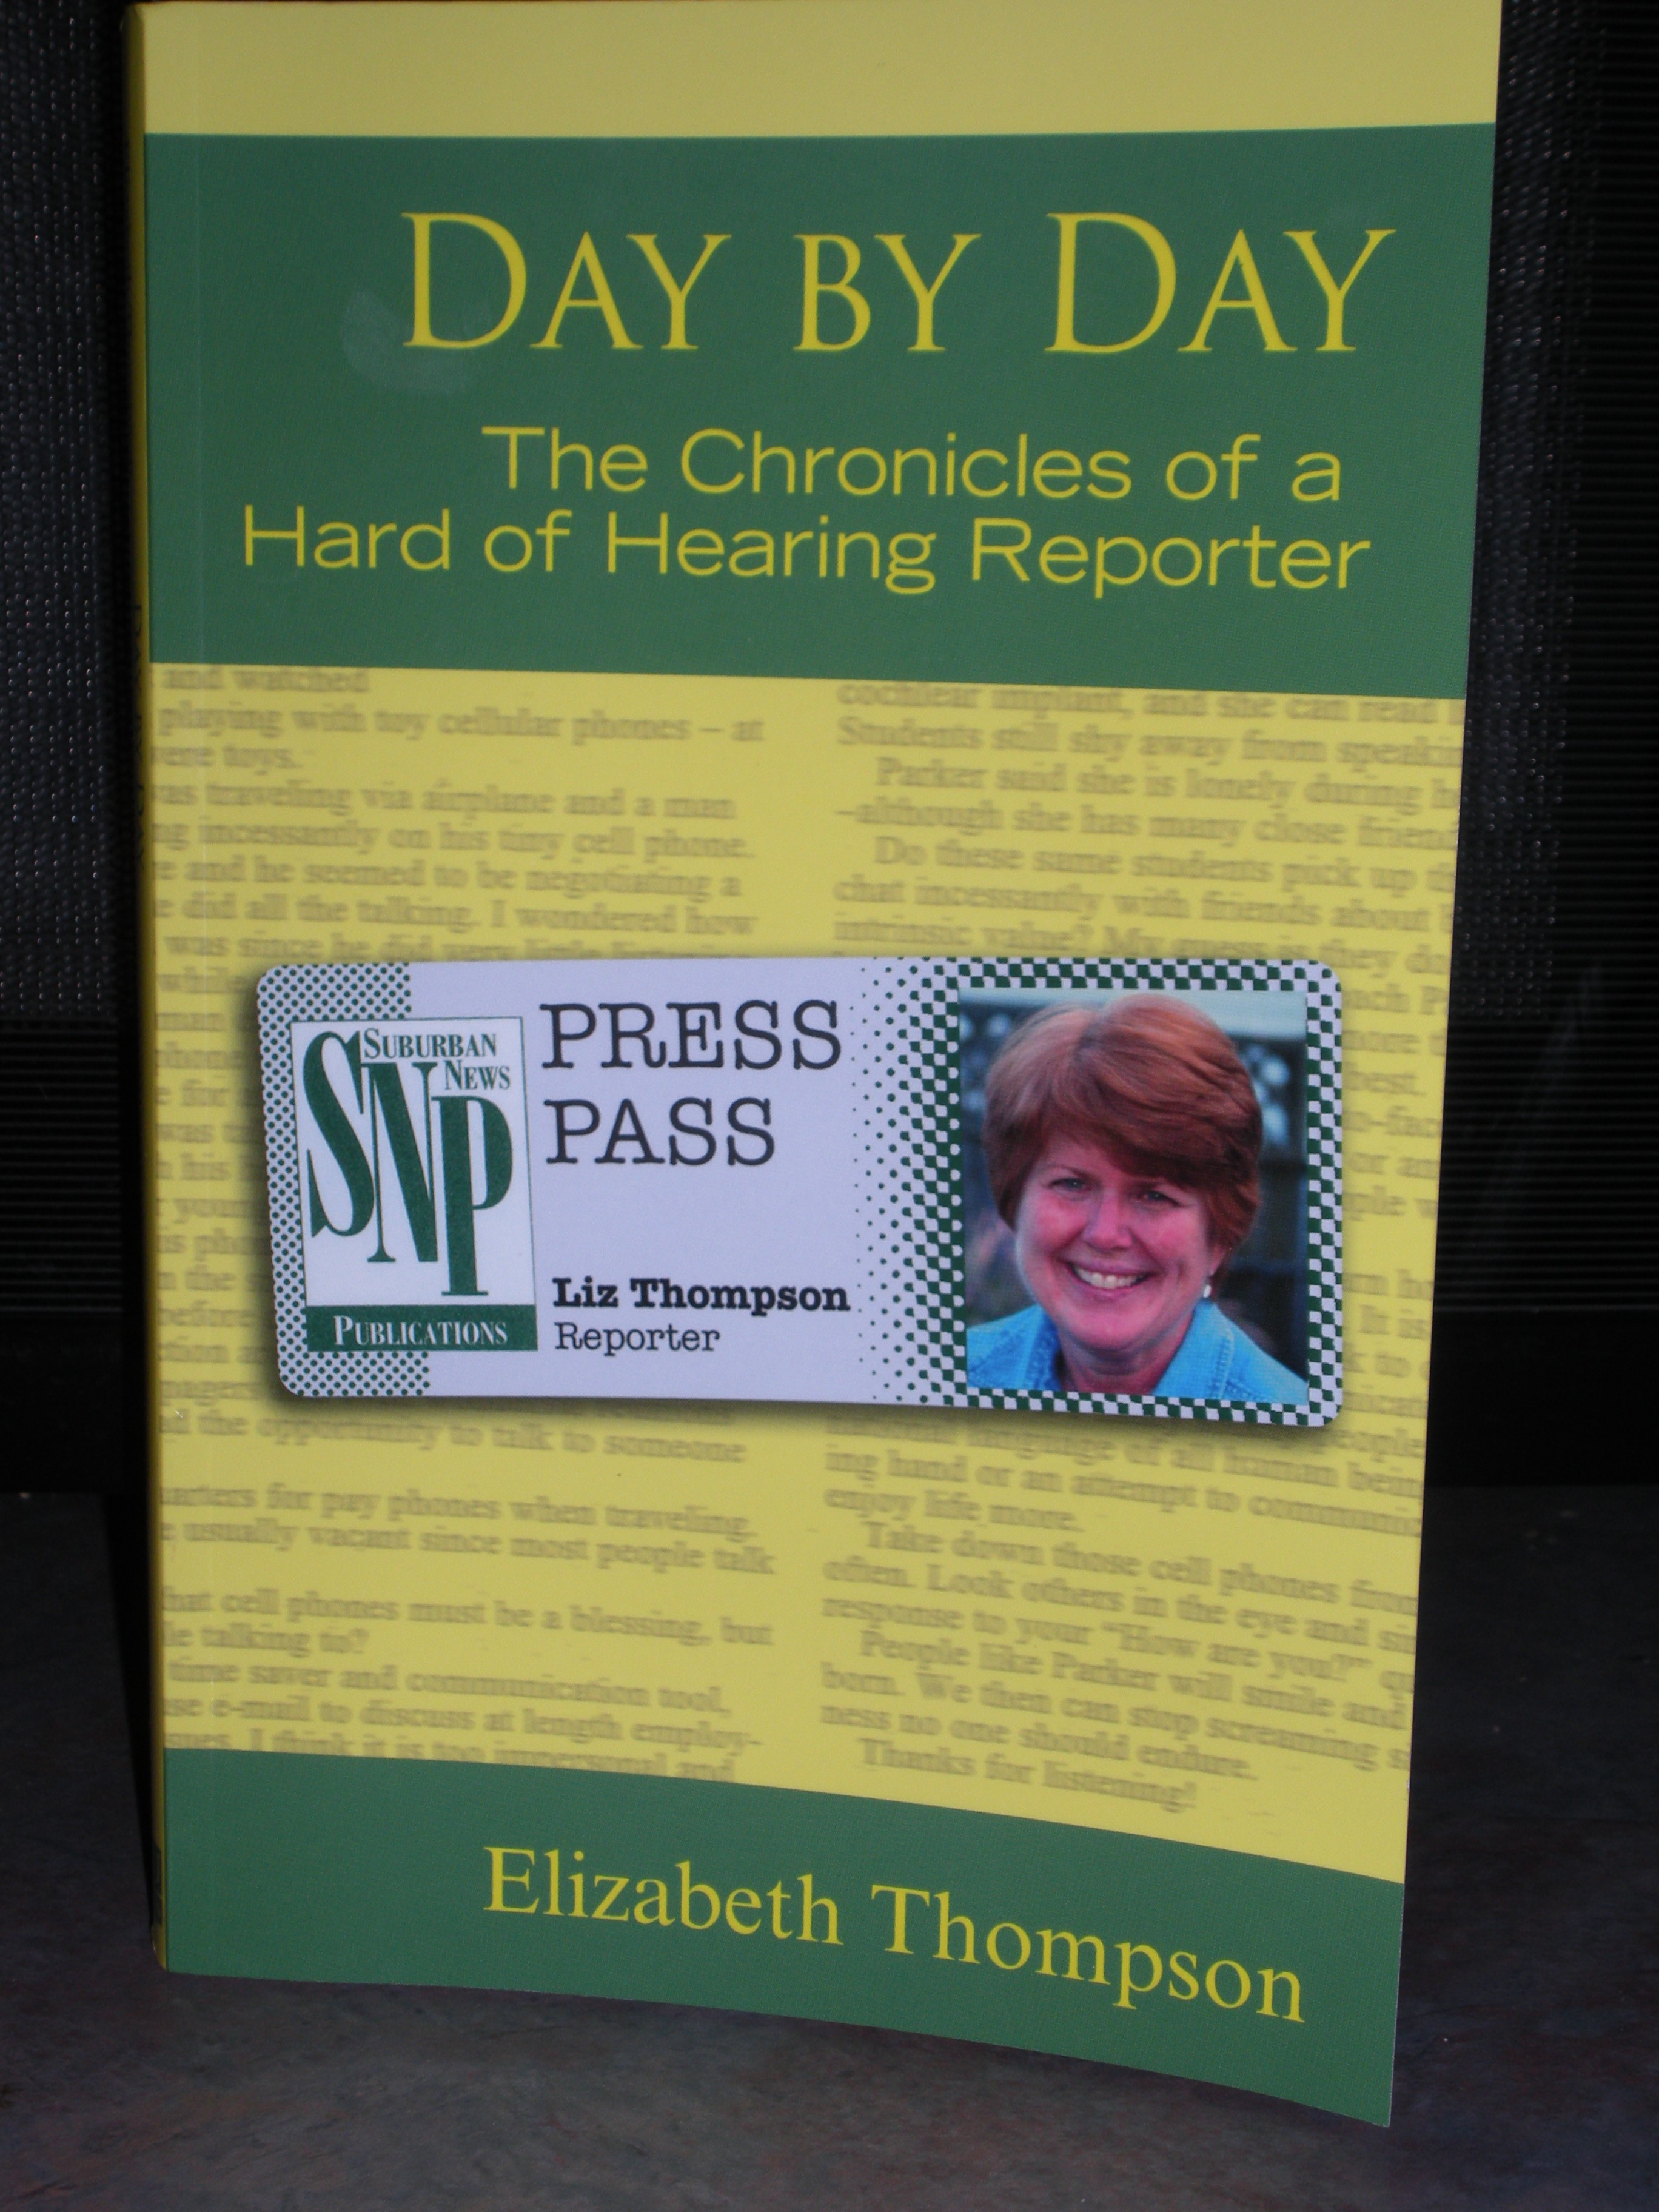 Day by Day, The Chronicles of a Hard of Hearing Reporter